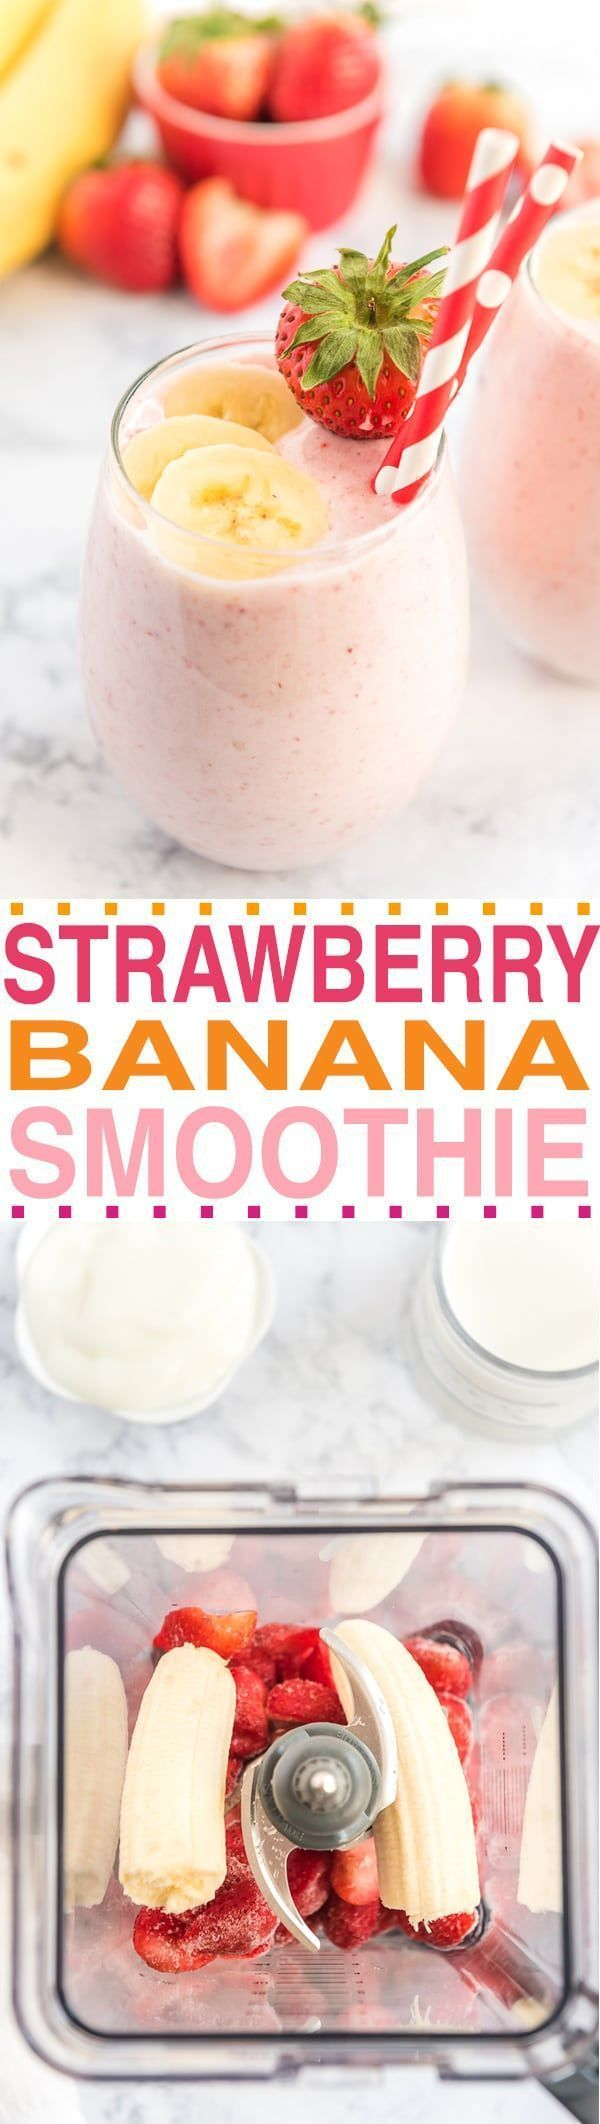 THE BEST STRAWBERRY BANANA SMOOTHIE RECIPE #smoothies #breakfast #healthy #strawberrybananasmoothie THE BEST STRAWBERRY BANANA SMOOTHIE RECIPE #smoothies #breakfast #healthy #strawberrybananasmoothie